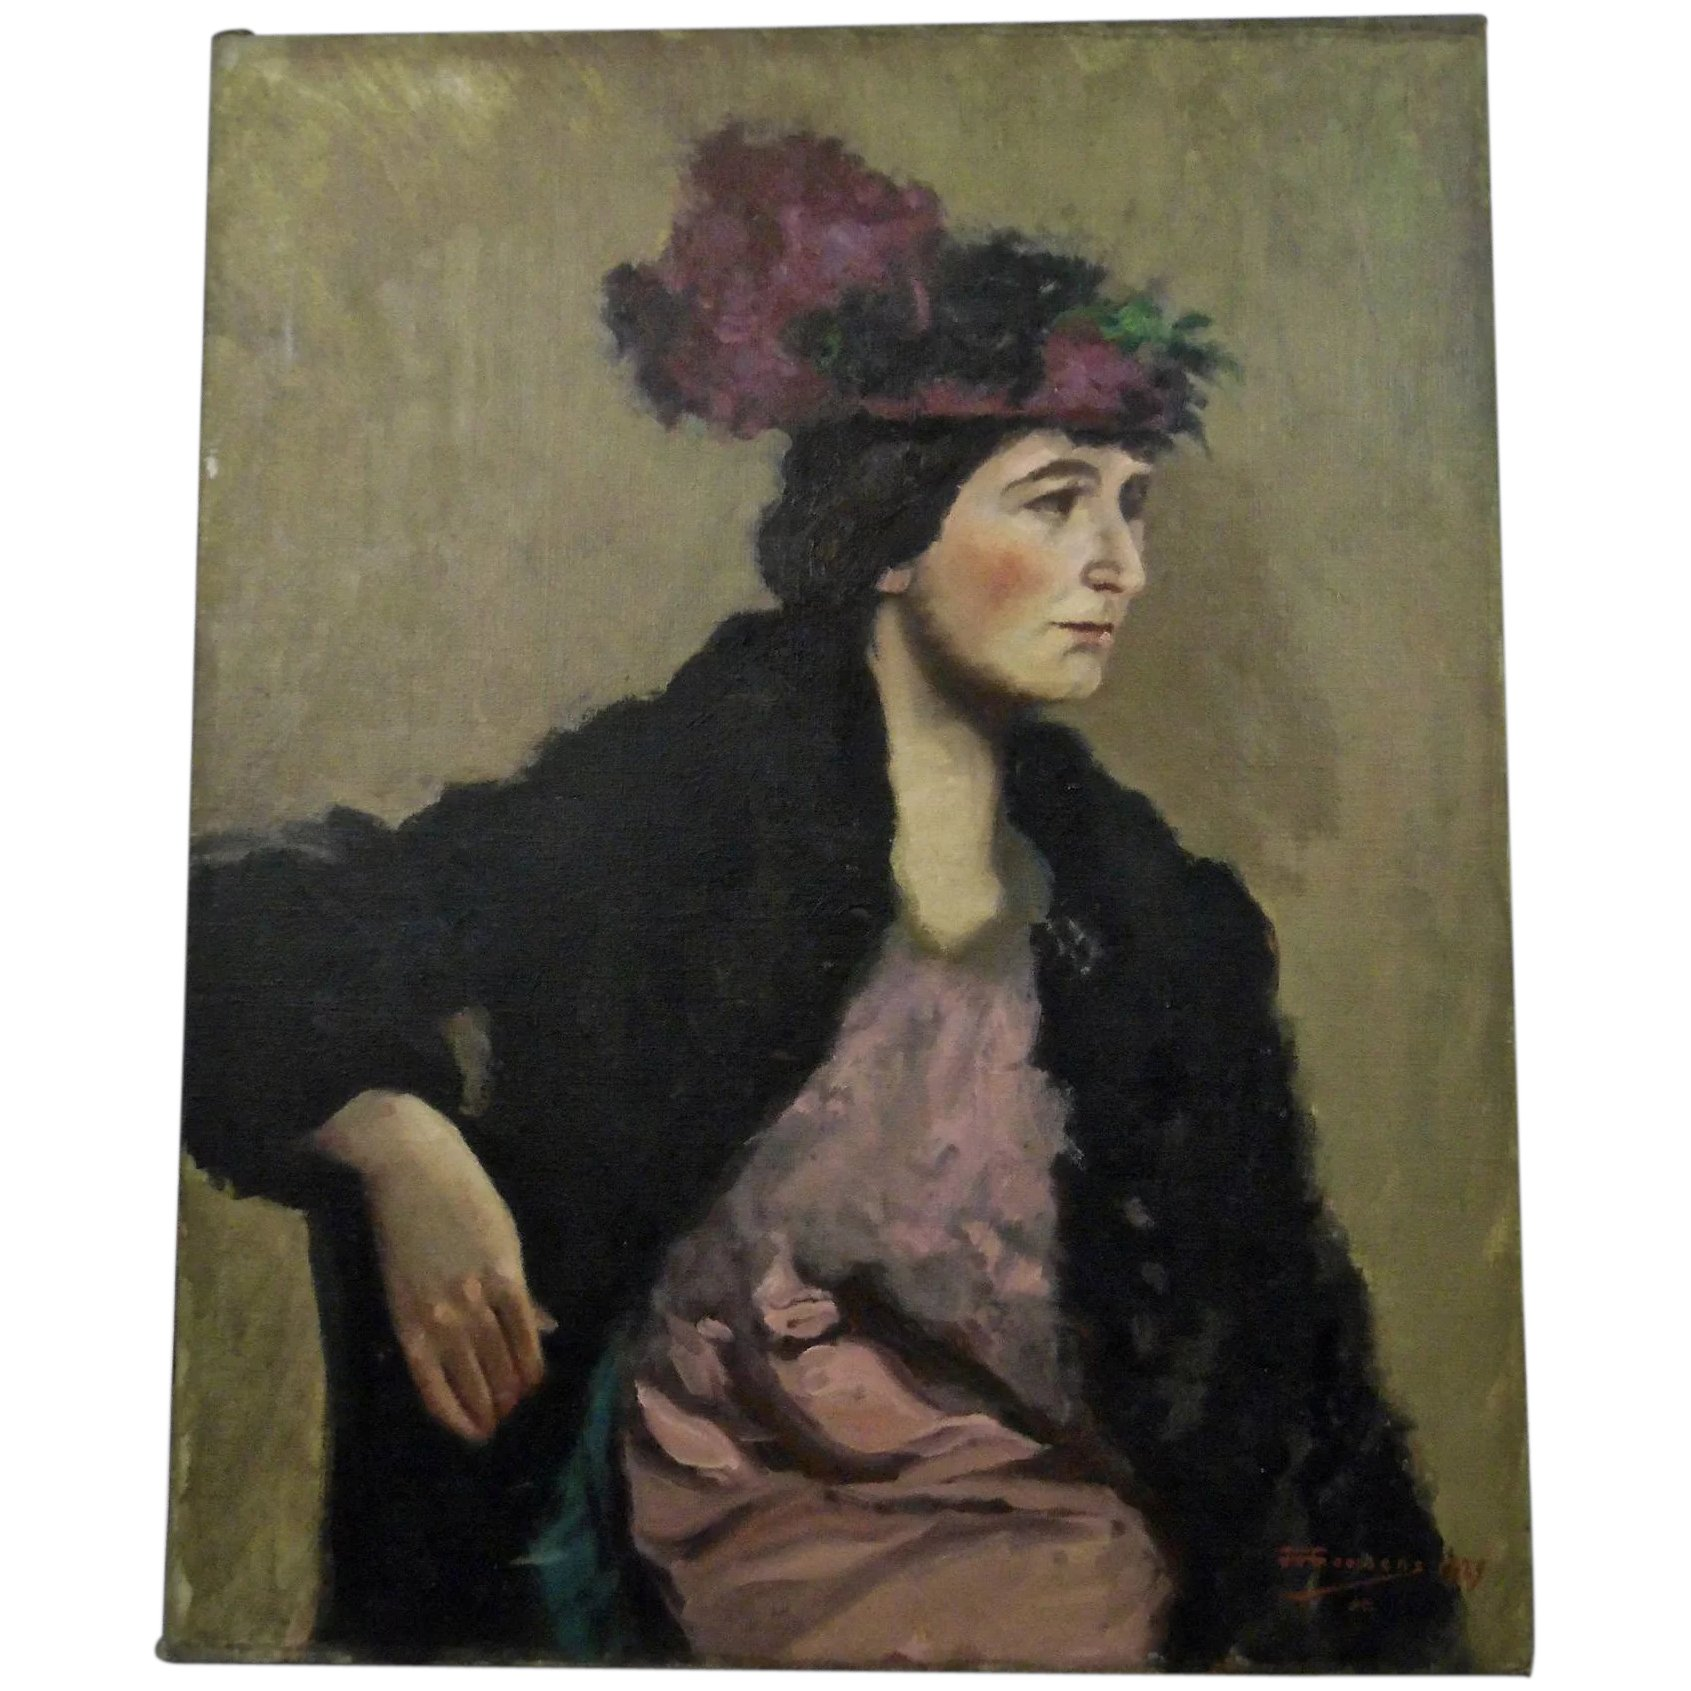 Goossens Design Bank.John Goossens Portrait Oil Painting C 1929 Dark Haired Woman With